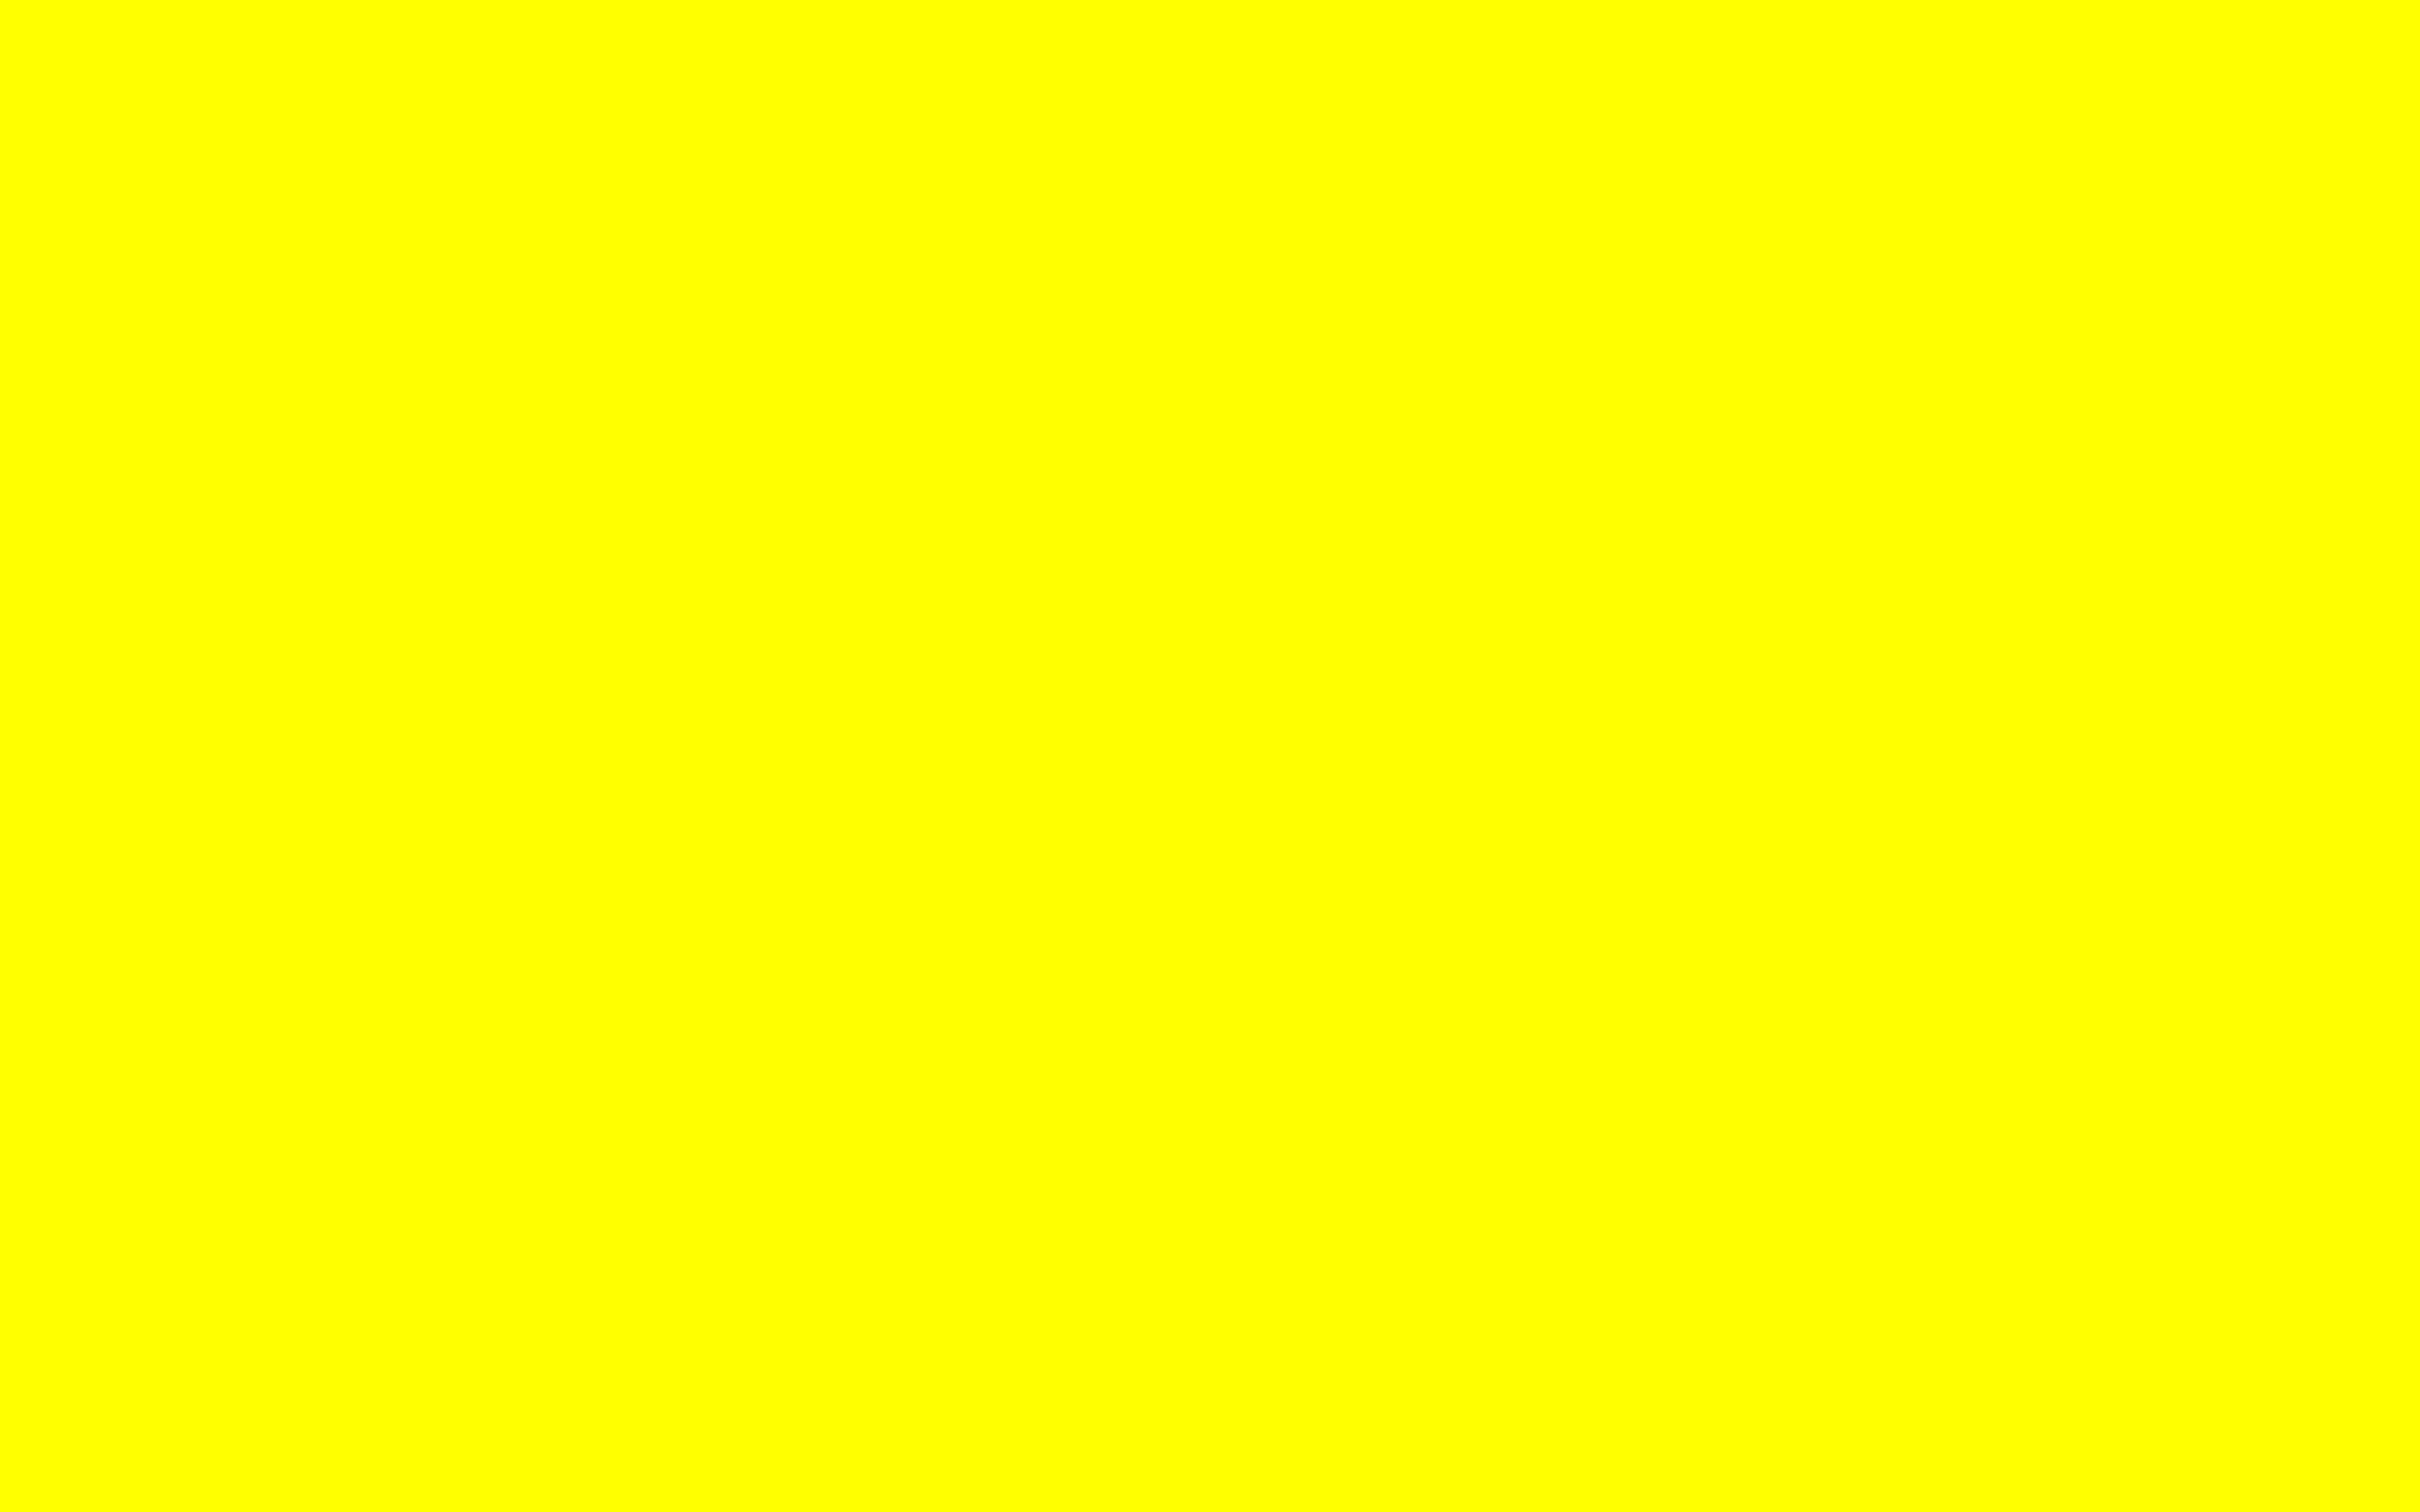 yellow backgrounds image wallpaper cave